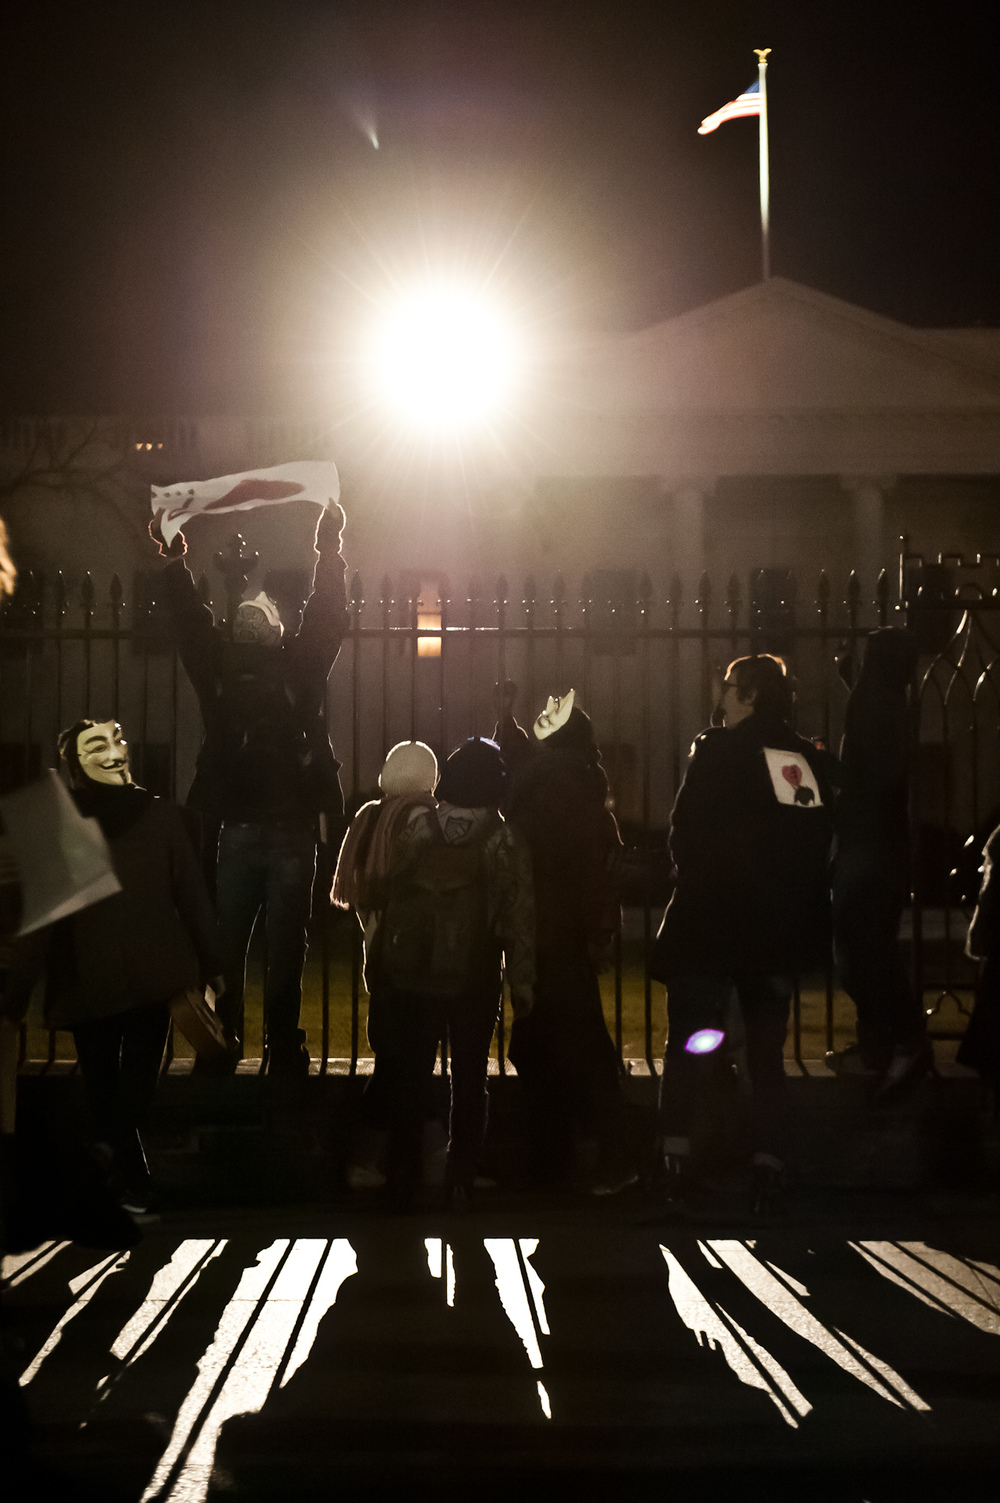 """Members of the 4chan originated group """"Anonymous"""" protest the 2012 National Defense Authorization Act in front of the White House. (January 20th, 2012)"""